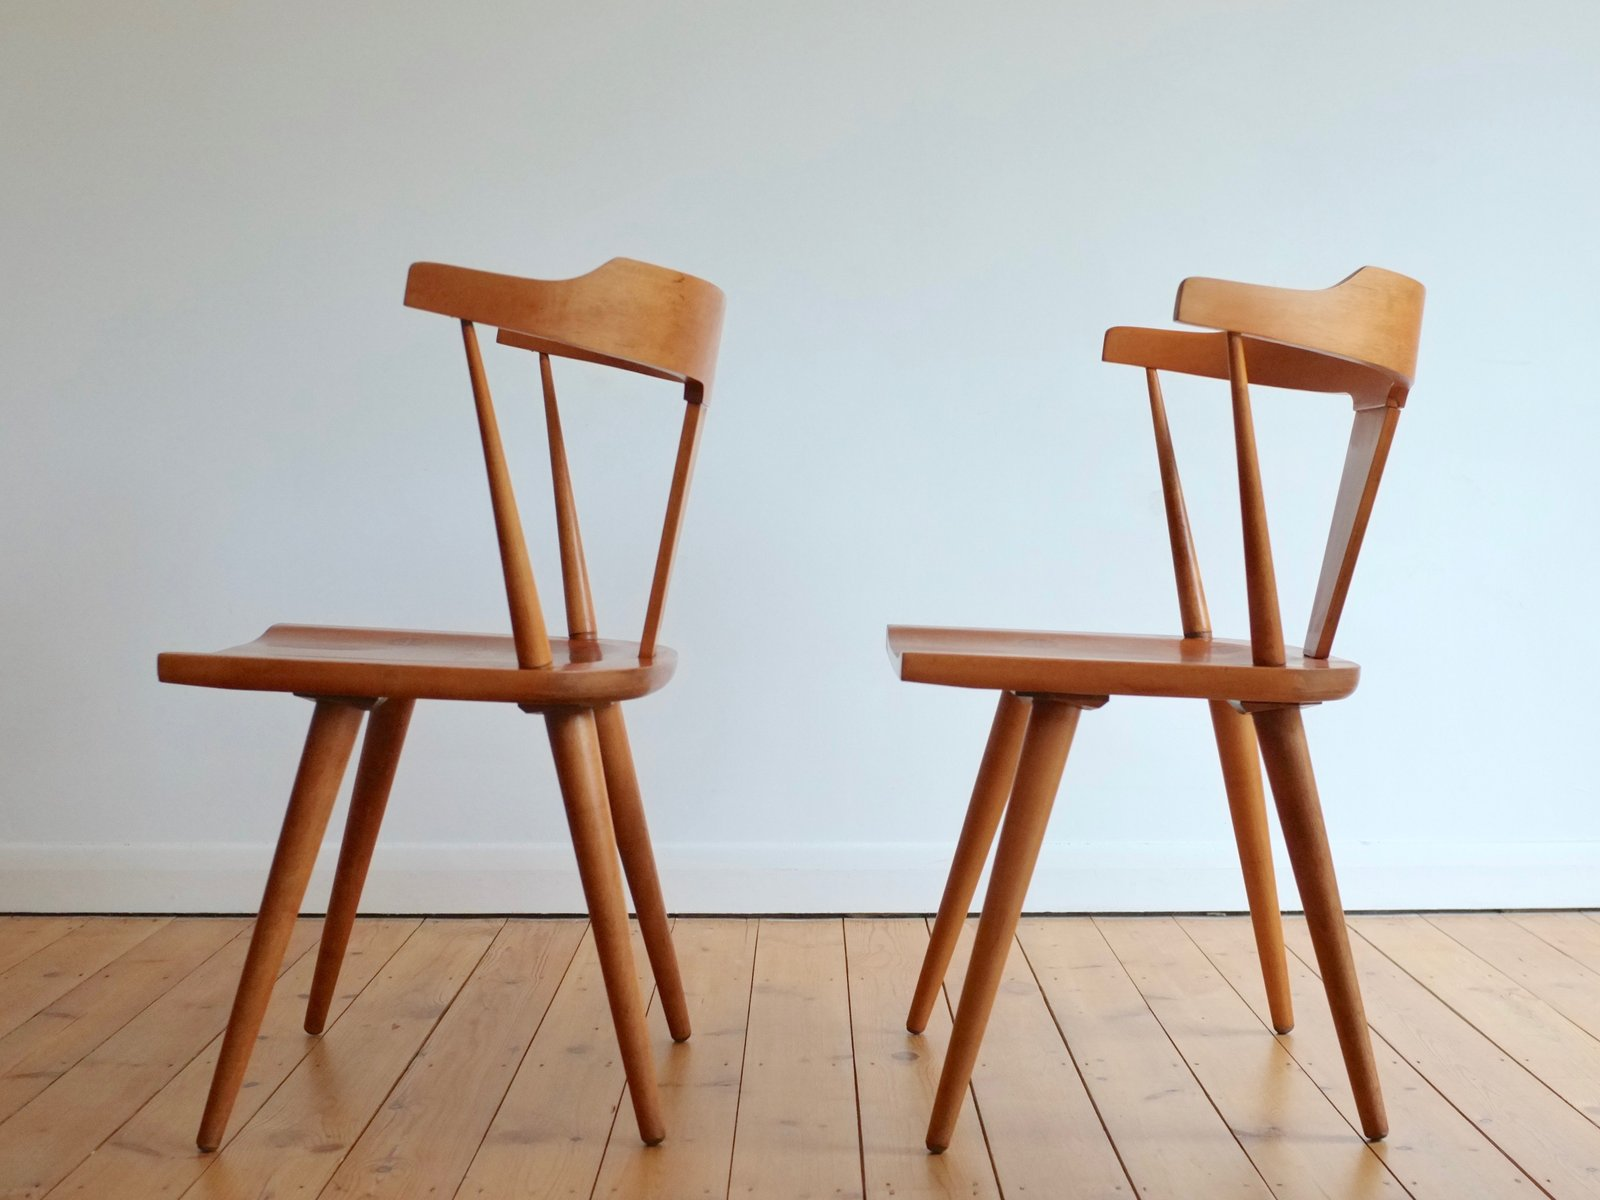 Charming Planner Groups Chairs By Paul McCobb For Winchendon Furniture Company,  1950s, Set Of 2